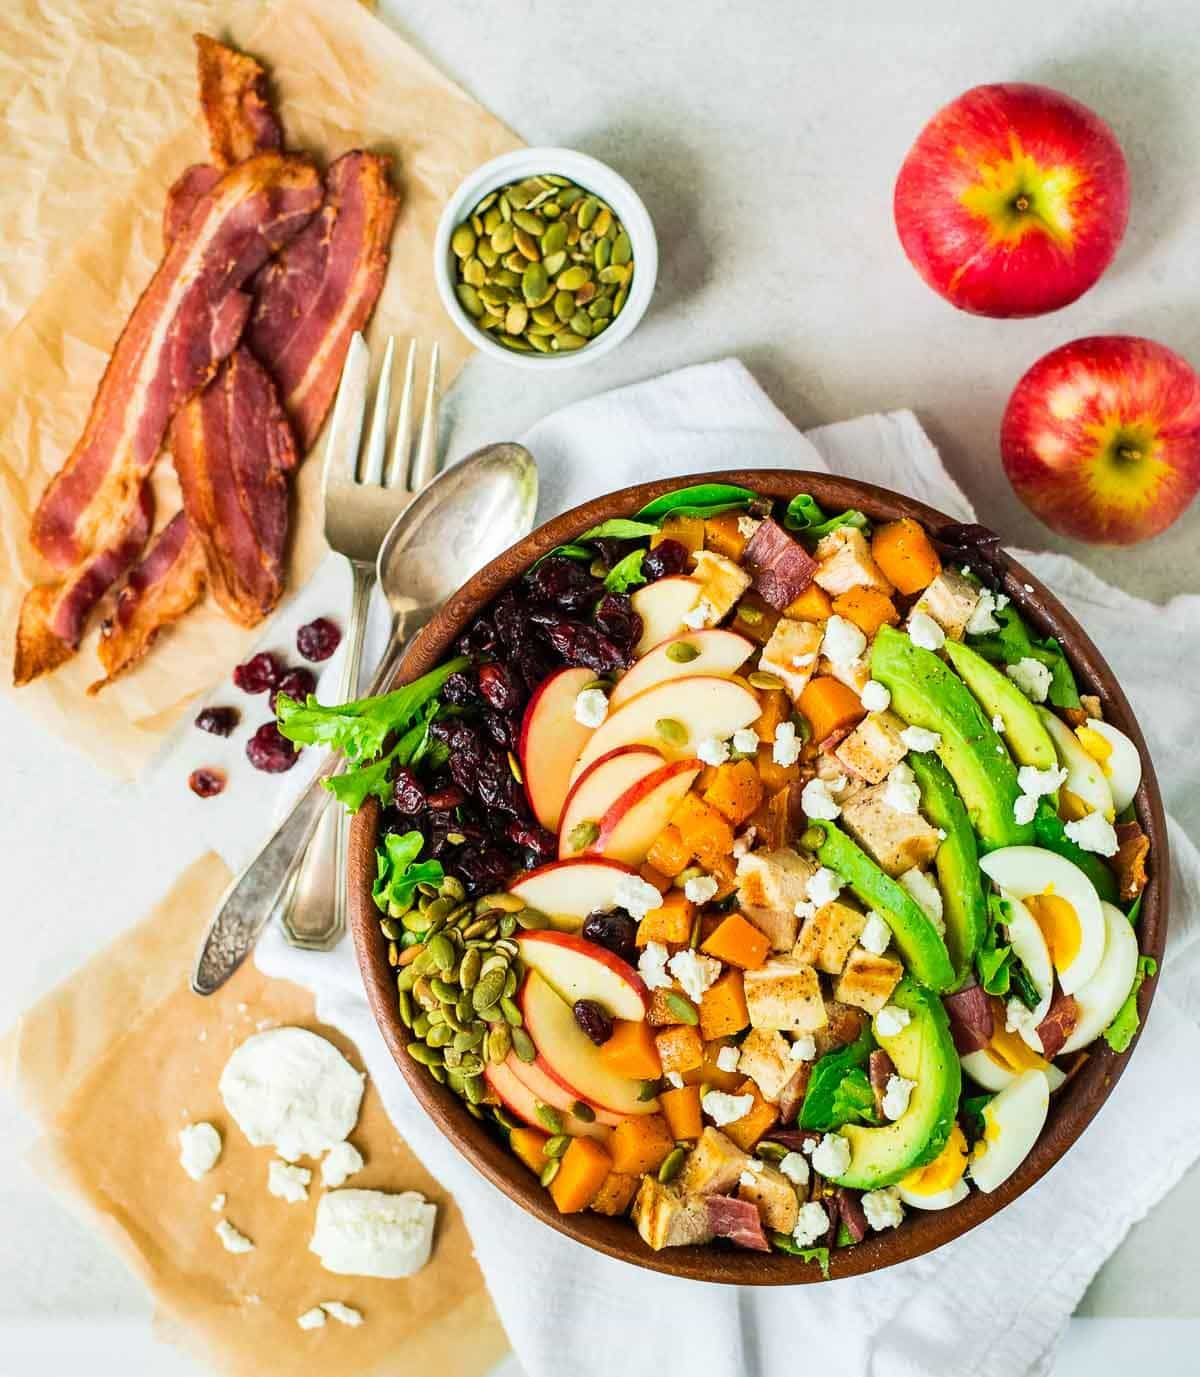 A fall twist on classic Cobb salad that everyone will love! Butternut squash, bacon, apples, goat cheese, and avocado. Filling and delicious. Perfect for Thanksgiving, Christmas, or any holiday, or as a main dish salad. Recipe at wellplated.com | @wellplated